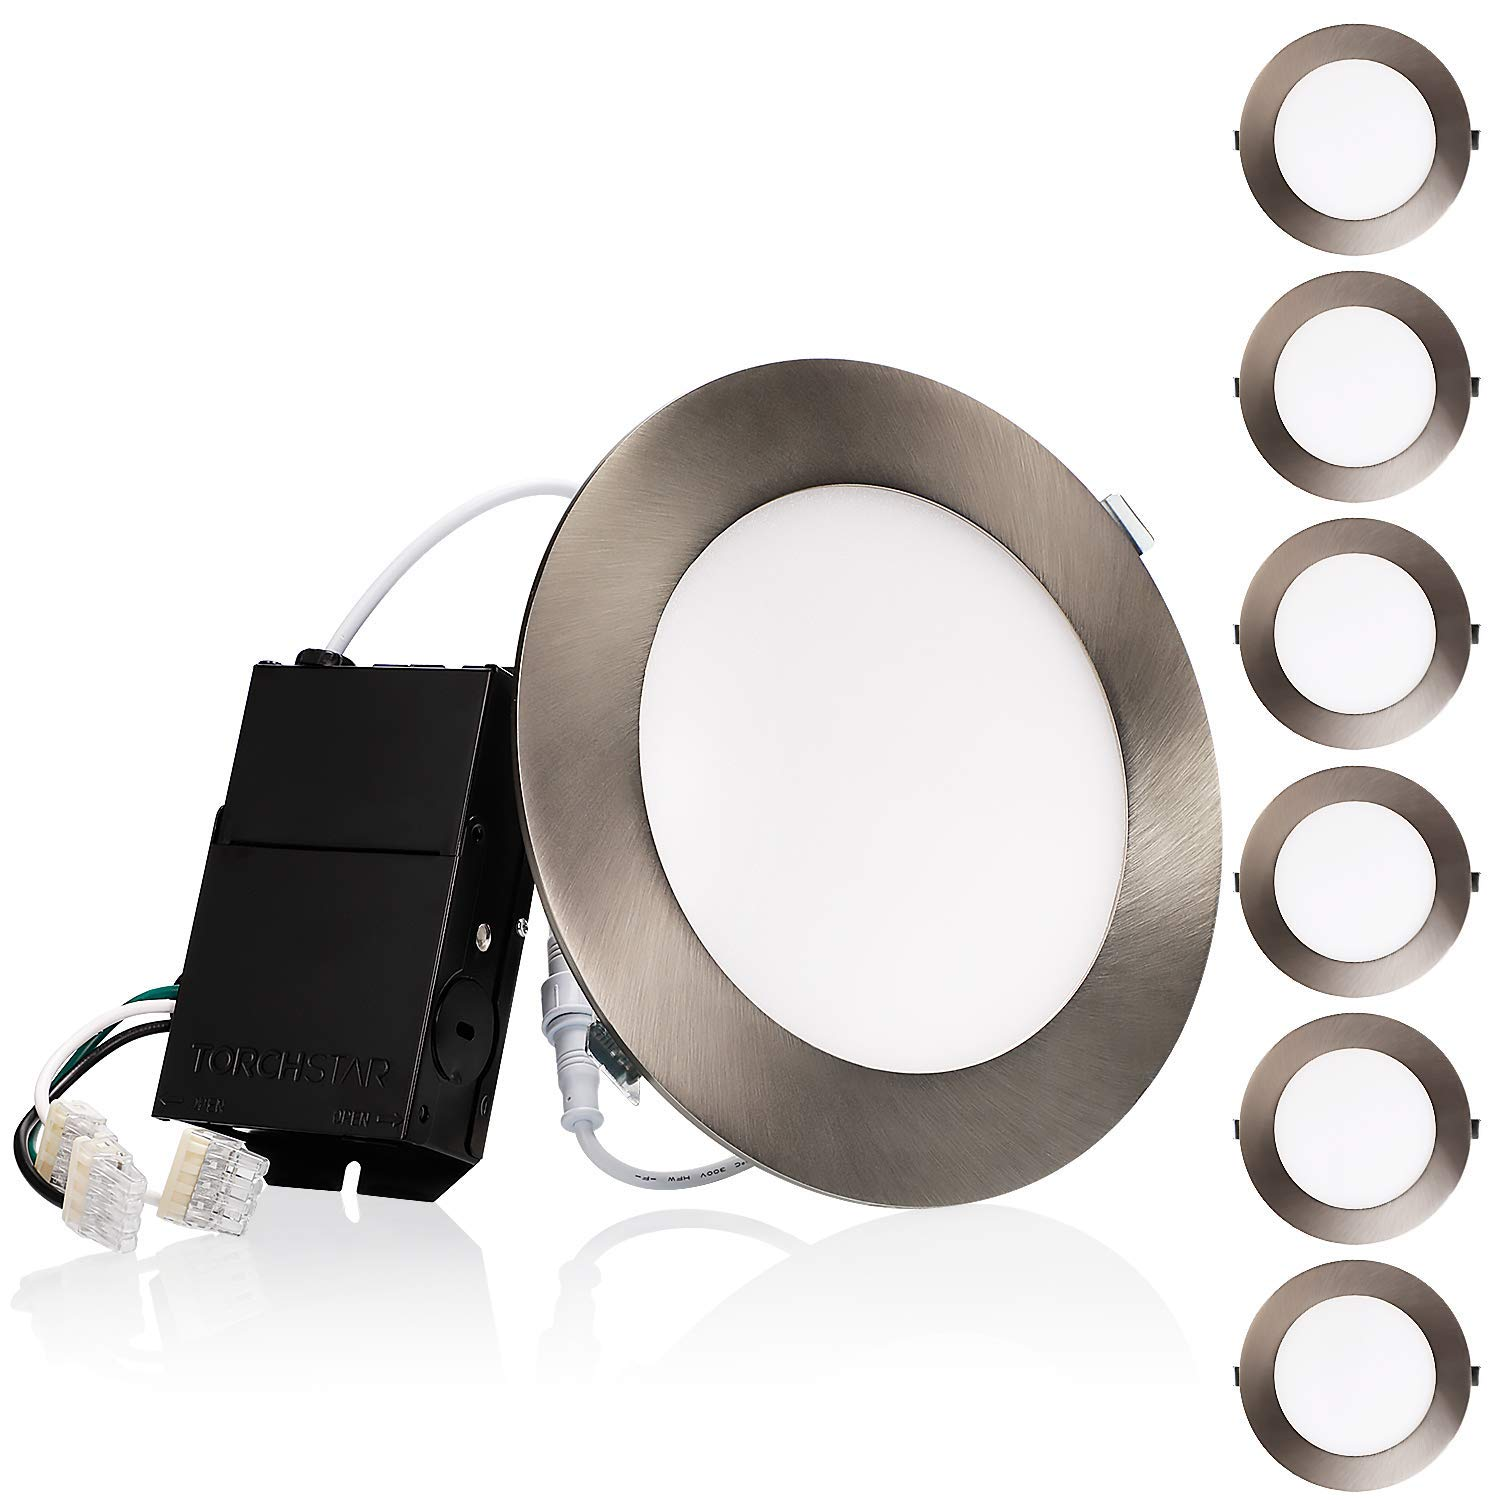 TORCHSTAR Premium 6 Inch Slim Panel Downlight with J-Box, 13.5W Dimmable Ultra-Thin LED Recessed Light, 2700K Soft White, 850lm, ETL & Energy Star, 5-Year Warranty, Satin Nickel, Pack of 6